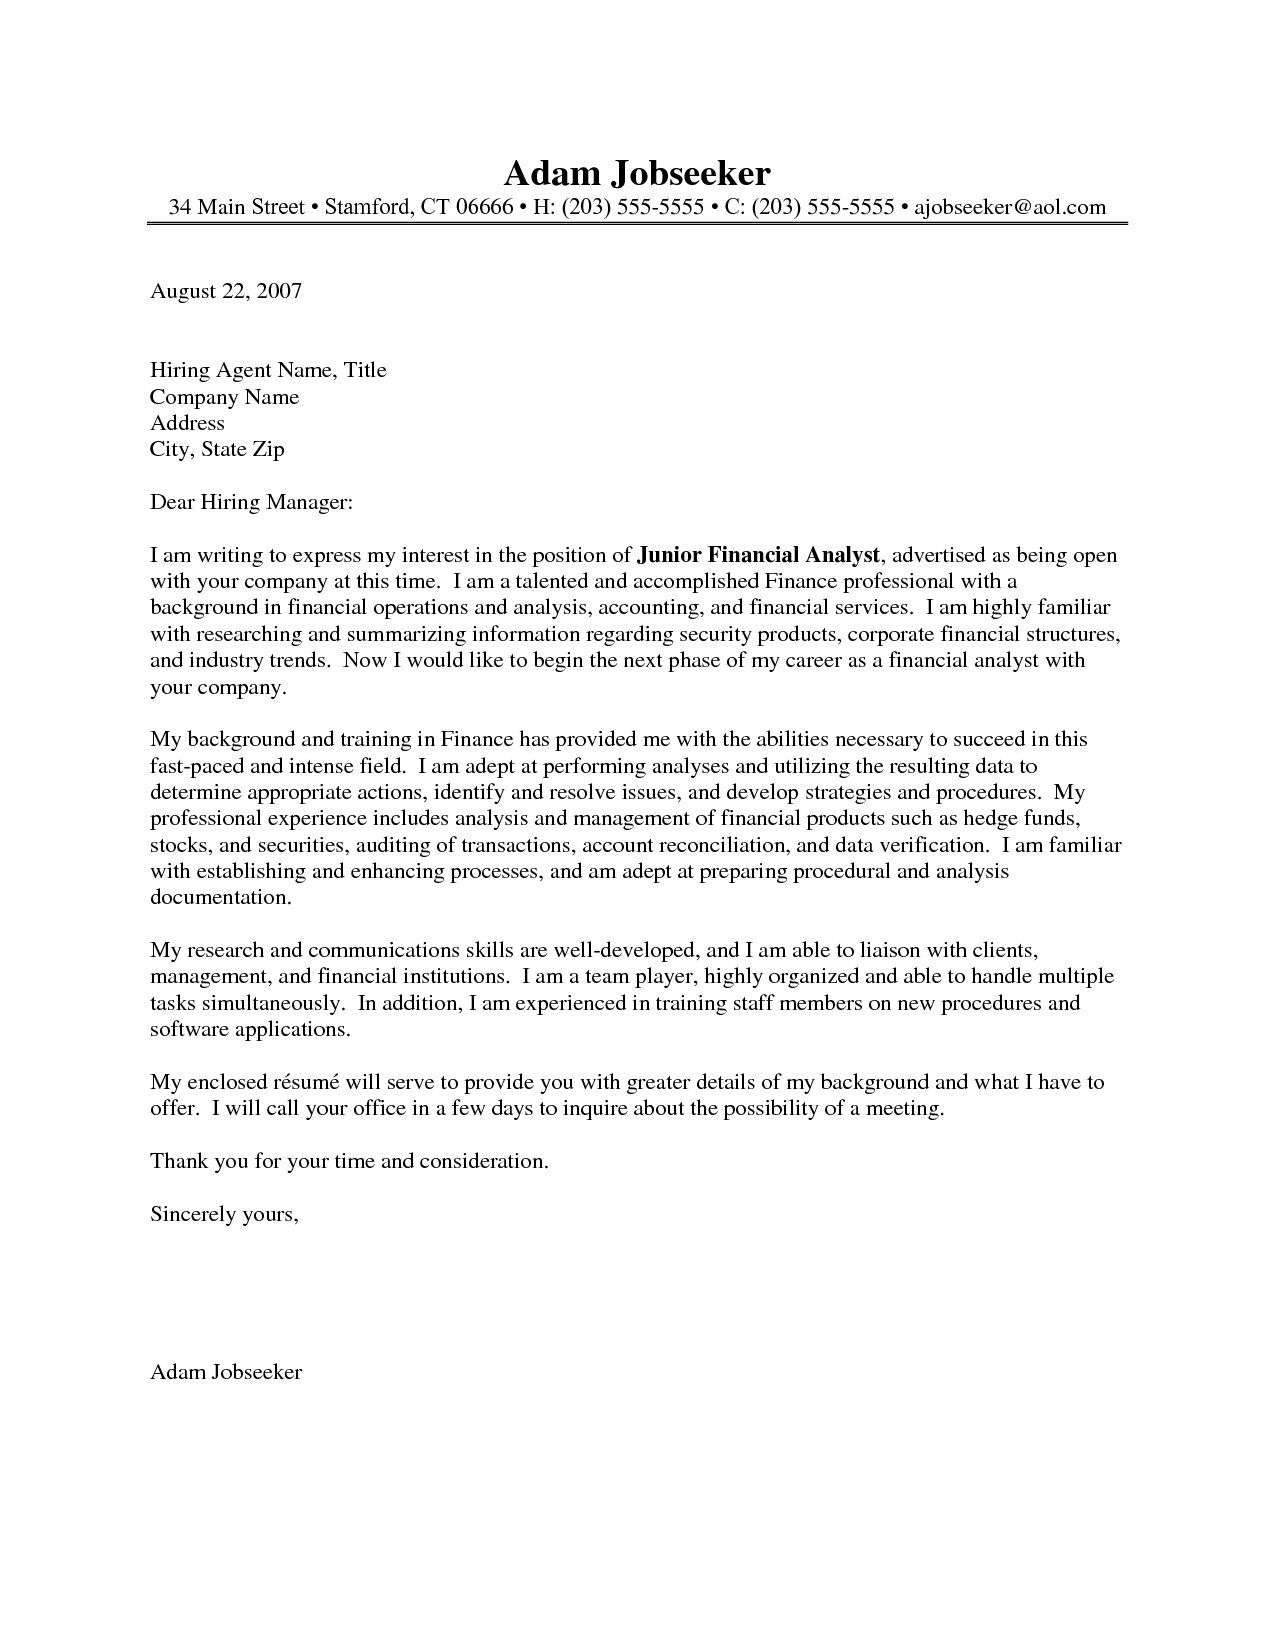 Financial Analyst Cover Letter Example - Financial Analyst Cover ...